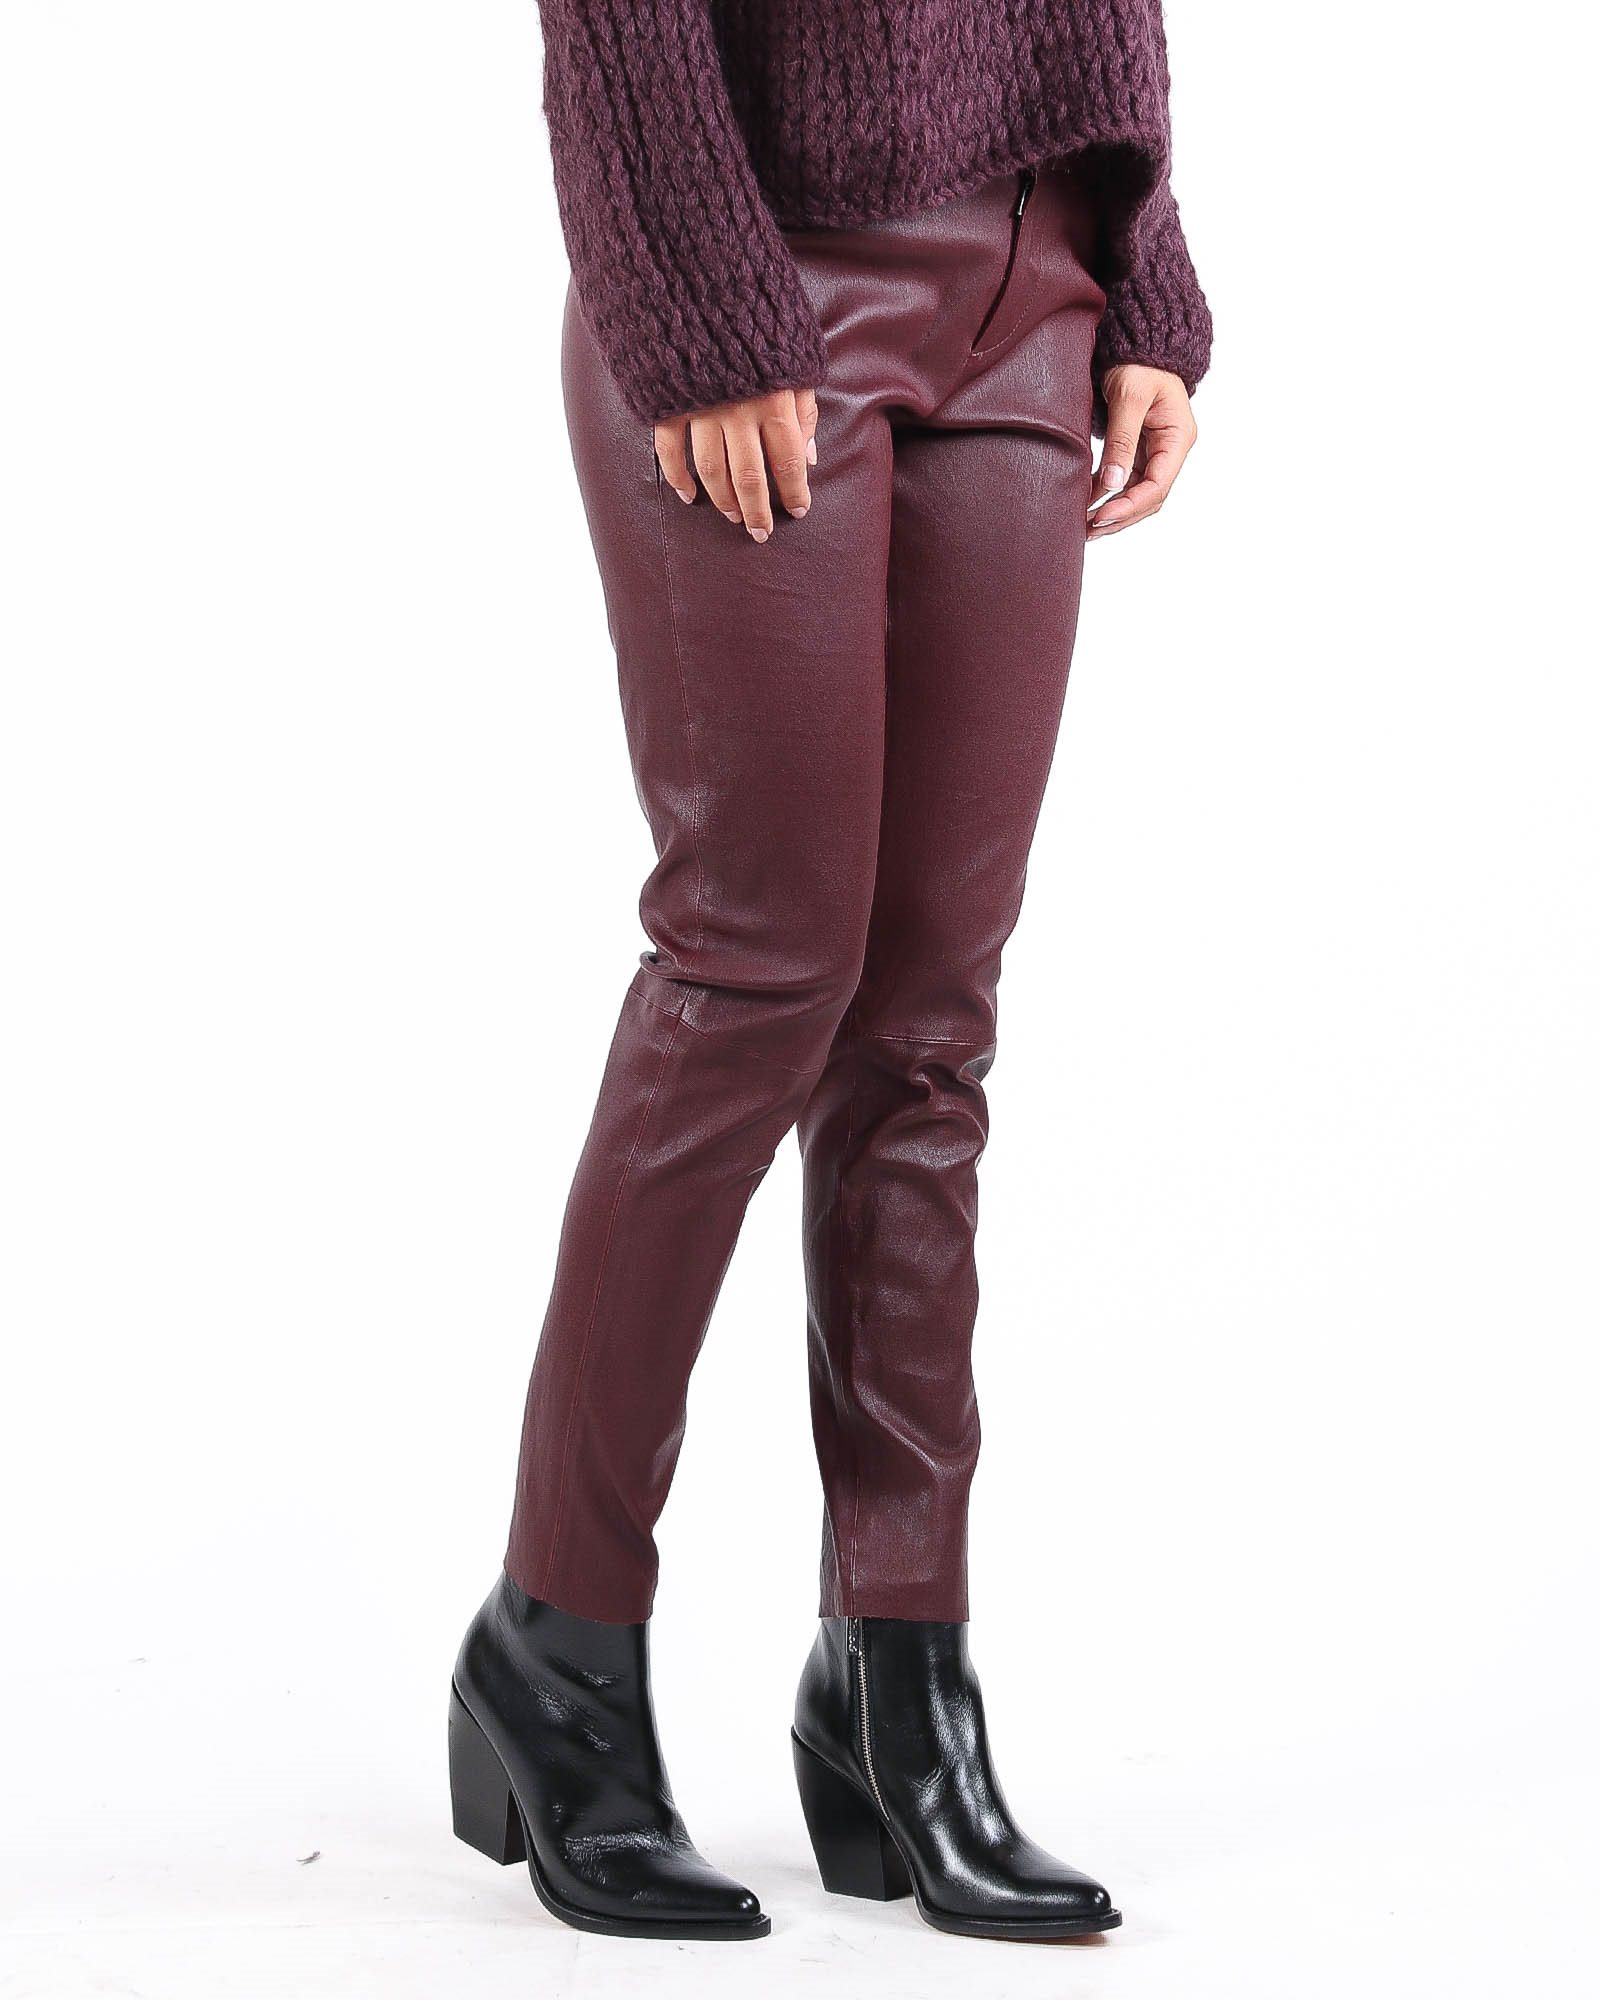 DNA Bordeaux red leather pants - Artishock Luxury and exclusive fashion